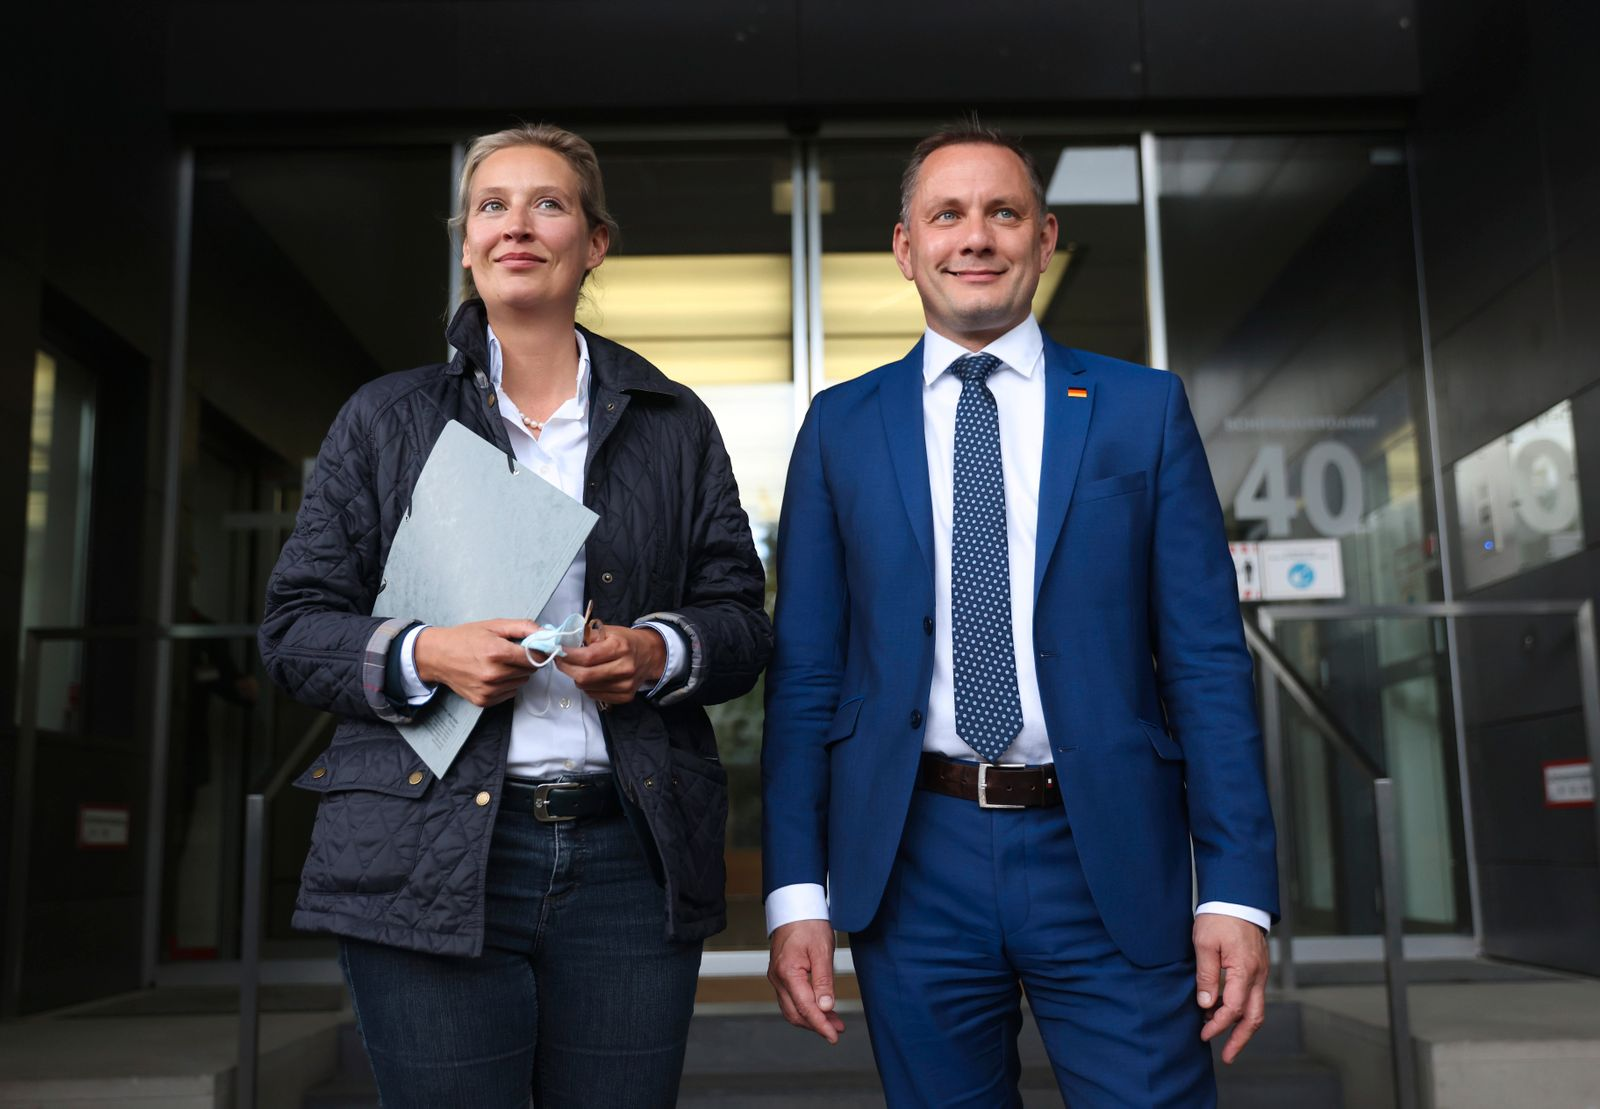 AfD Presents Lead Duo For September Elections